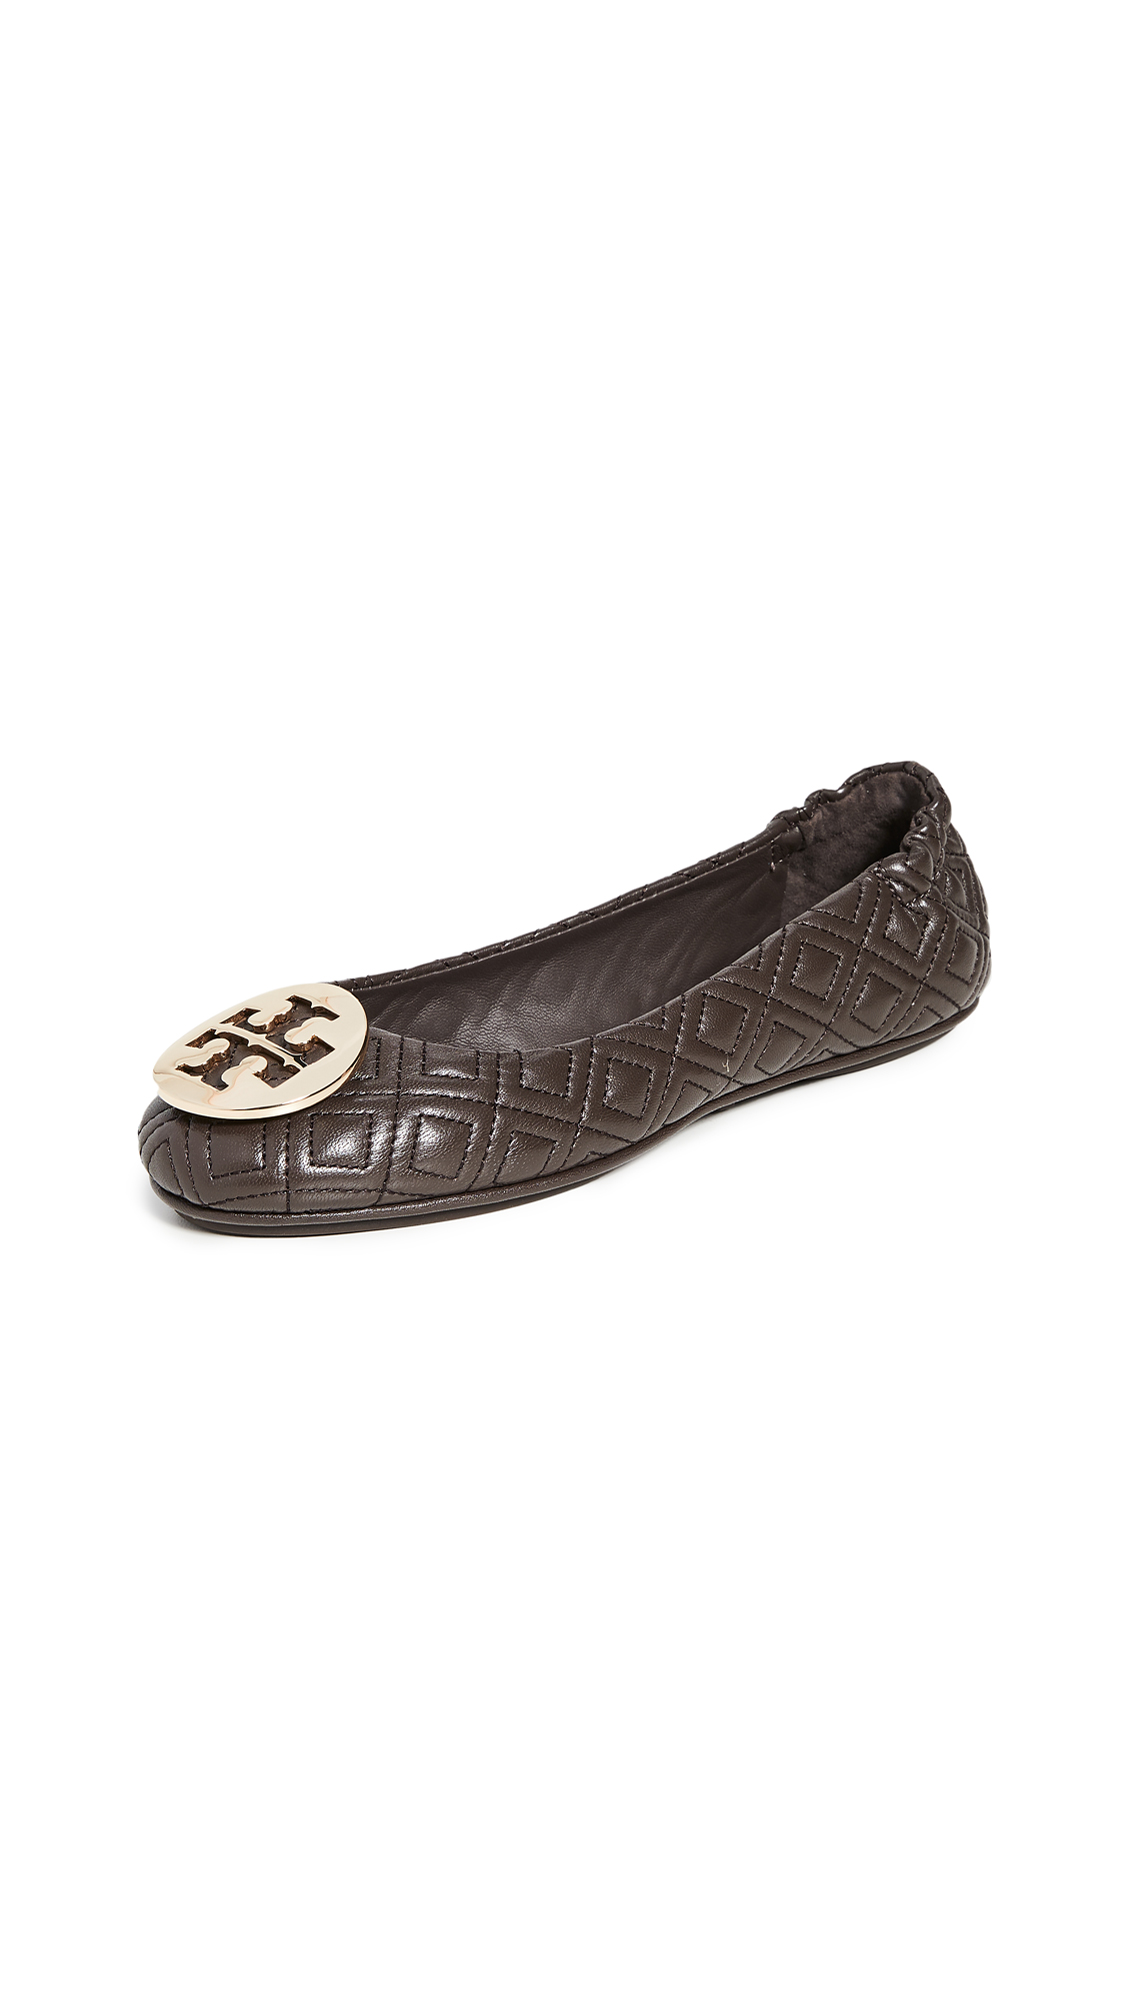 Tory Burch Flats QUILTED MINNIE FLATS